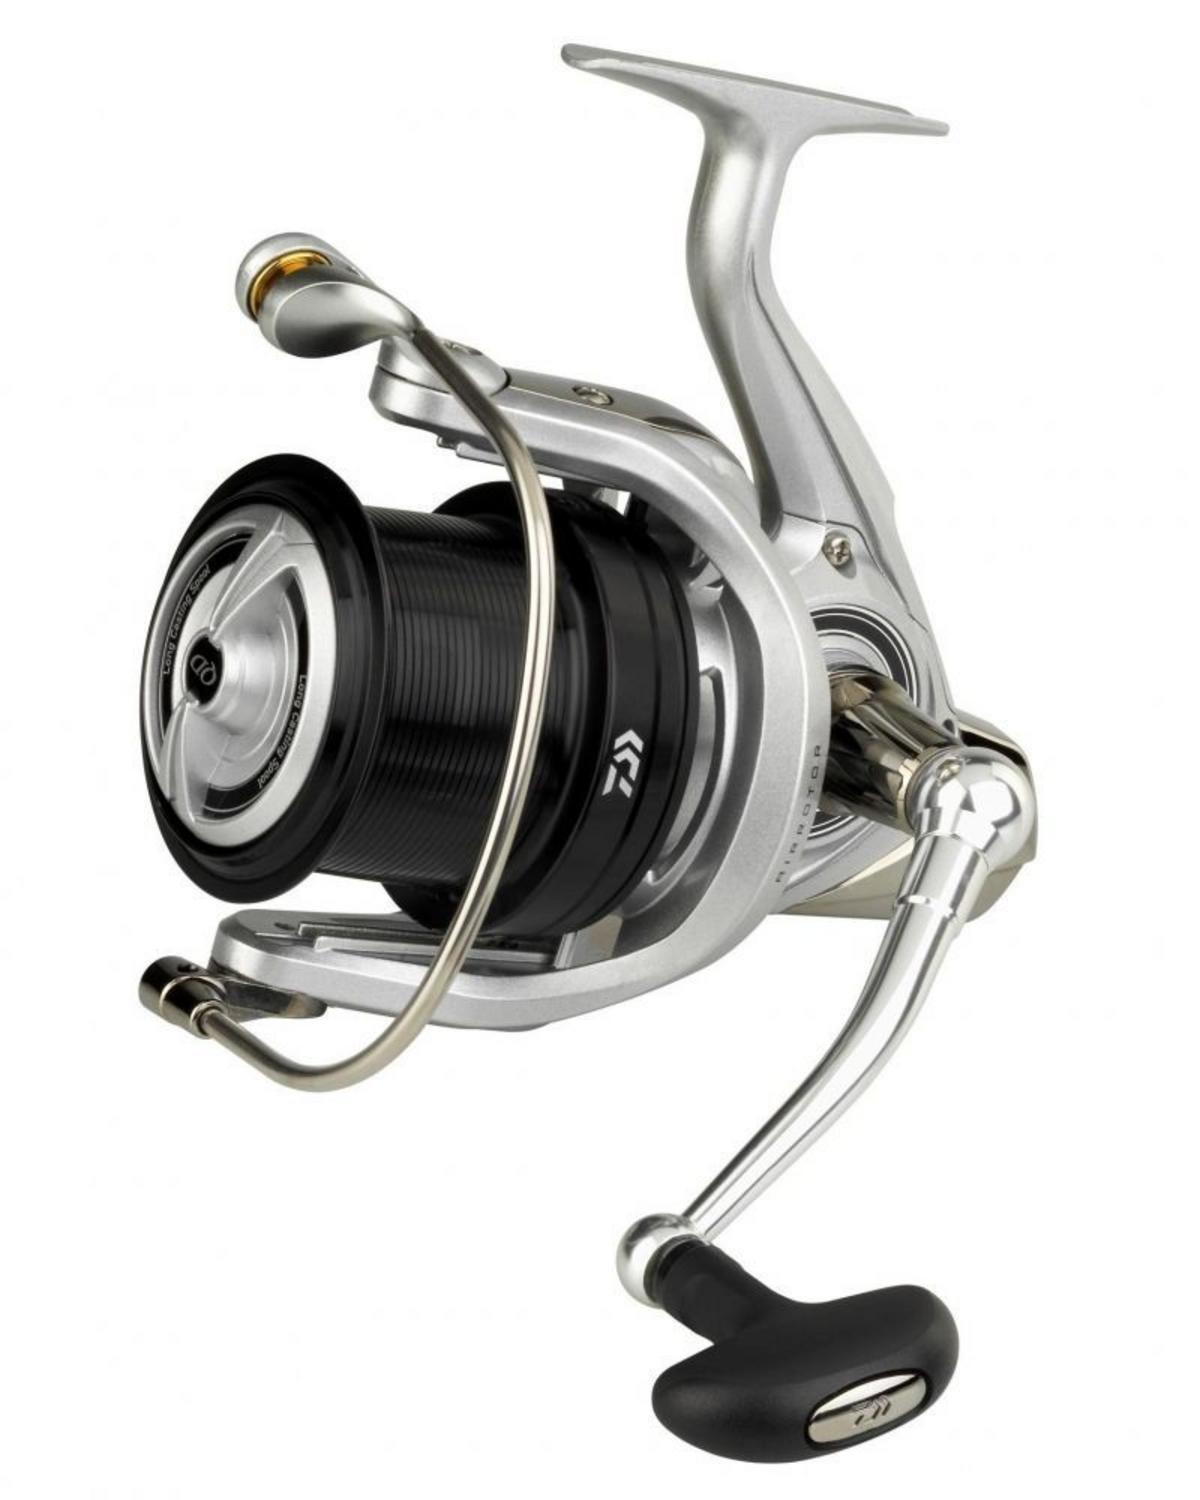 EX DISPLAY DAIWA WINDCAST SF 4500QDA SPINNING REEL WCSF4500QDA